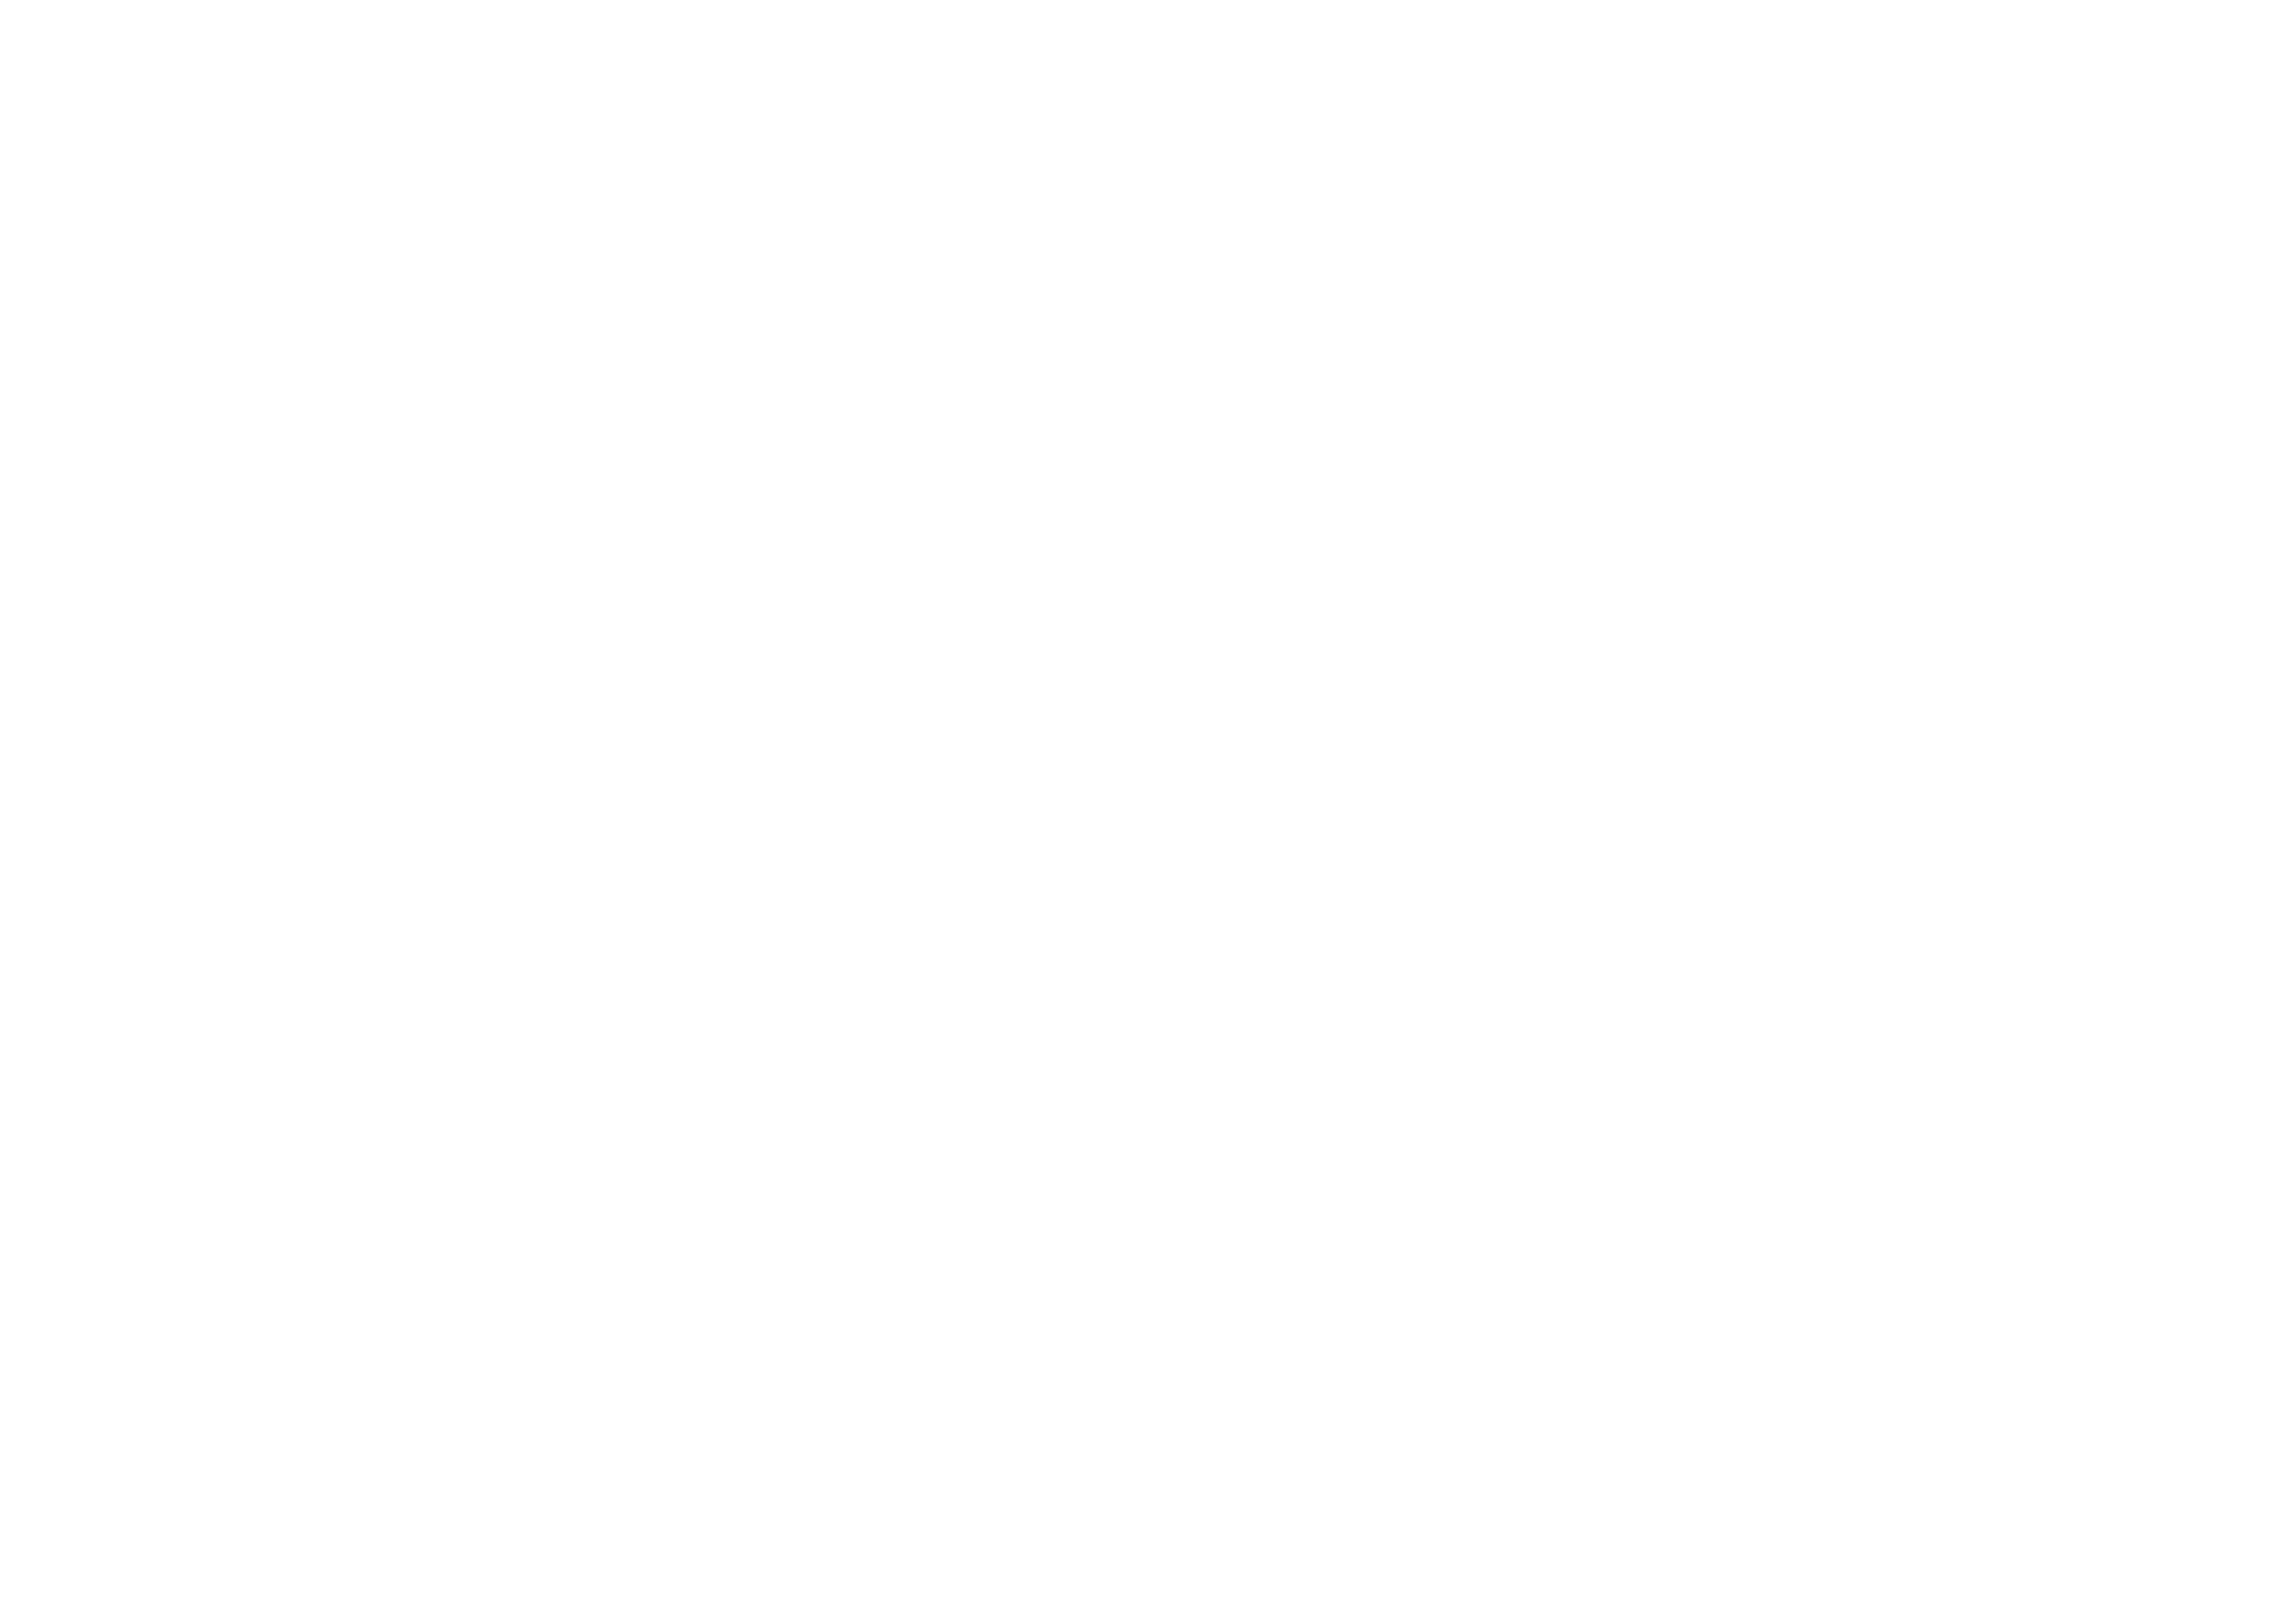 My Kidio